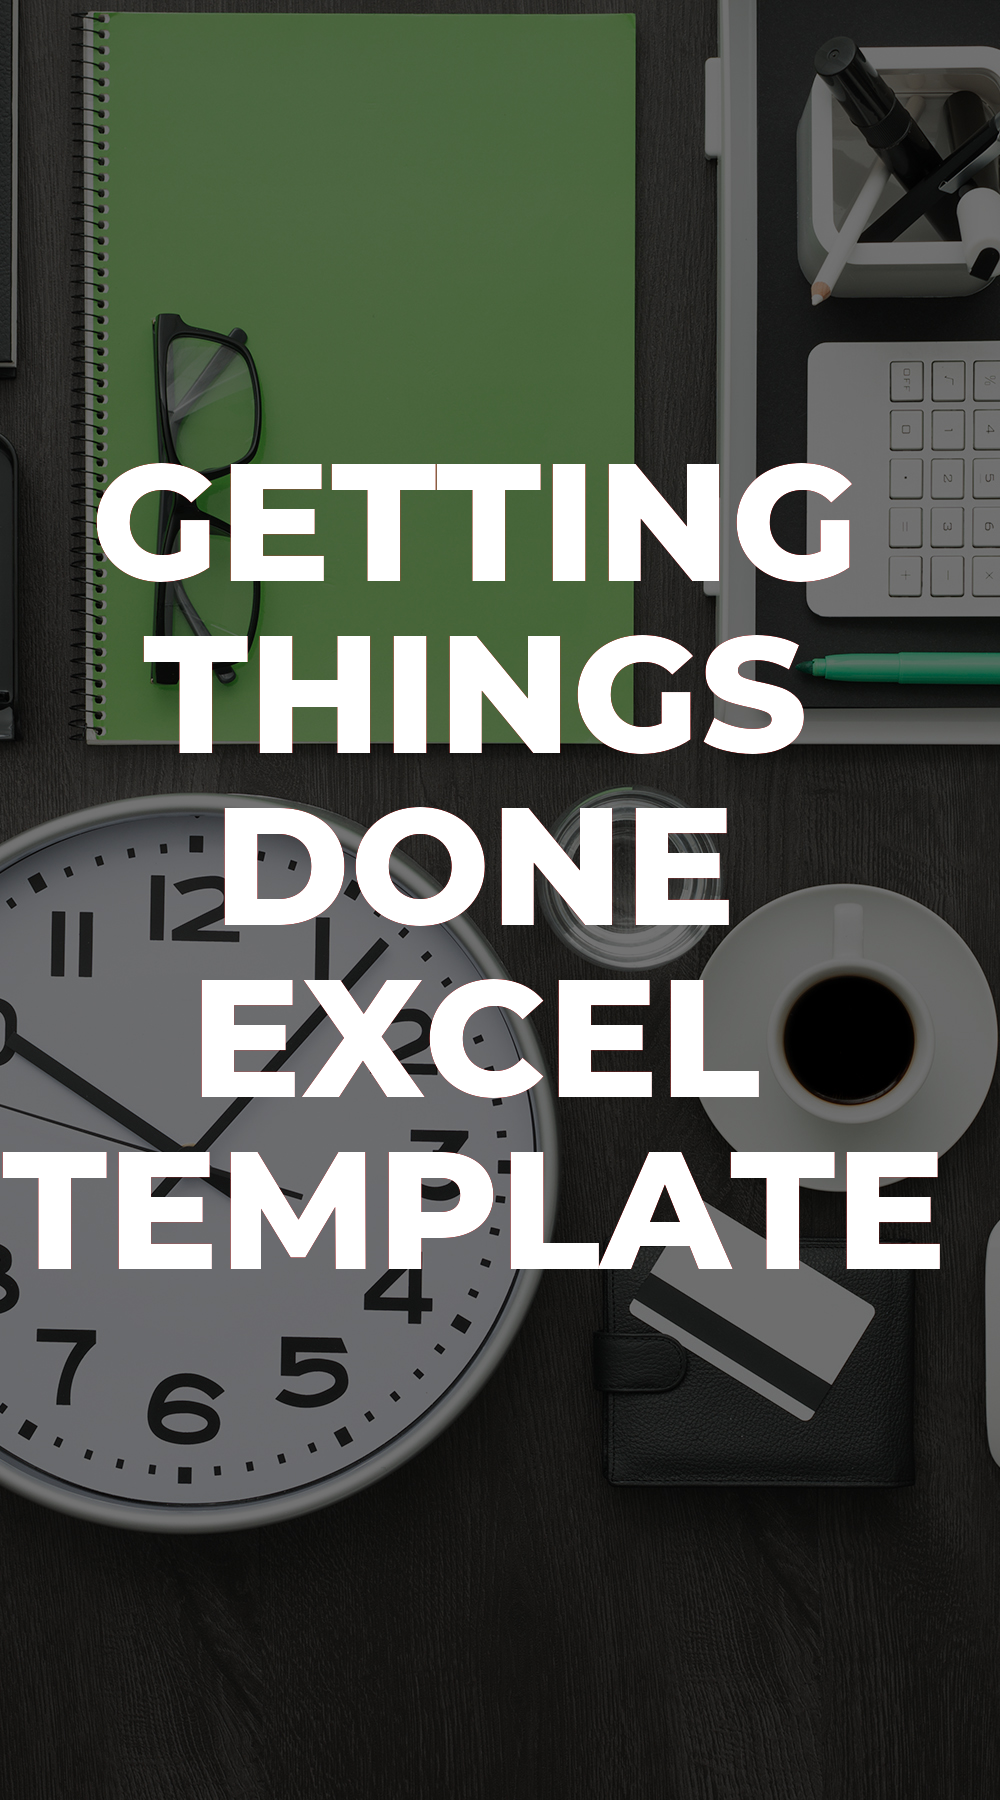 Getting Things Done Excel Template In 2020 Getting Things Done Excel Templates Gtd System